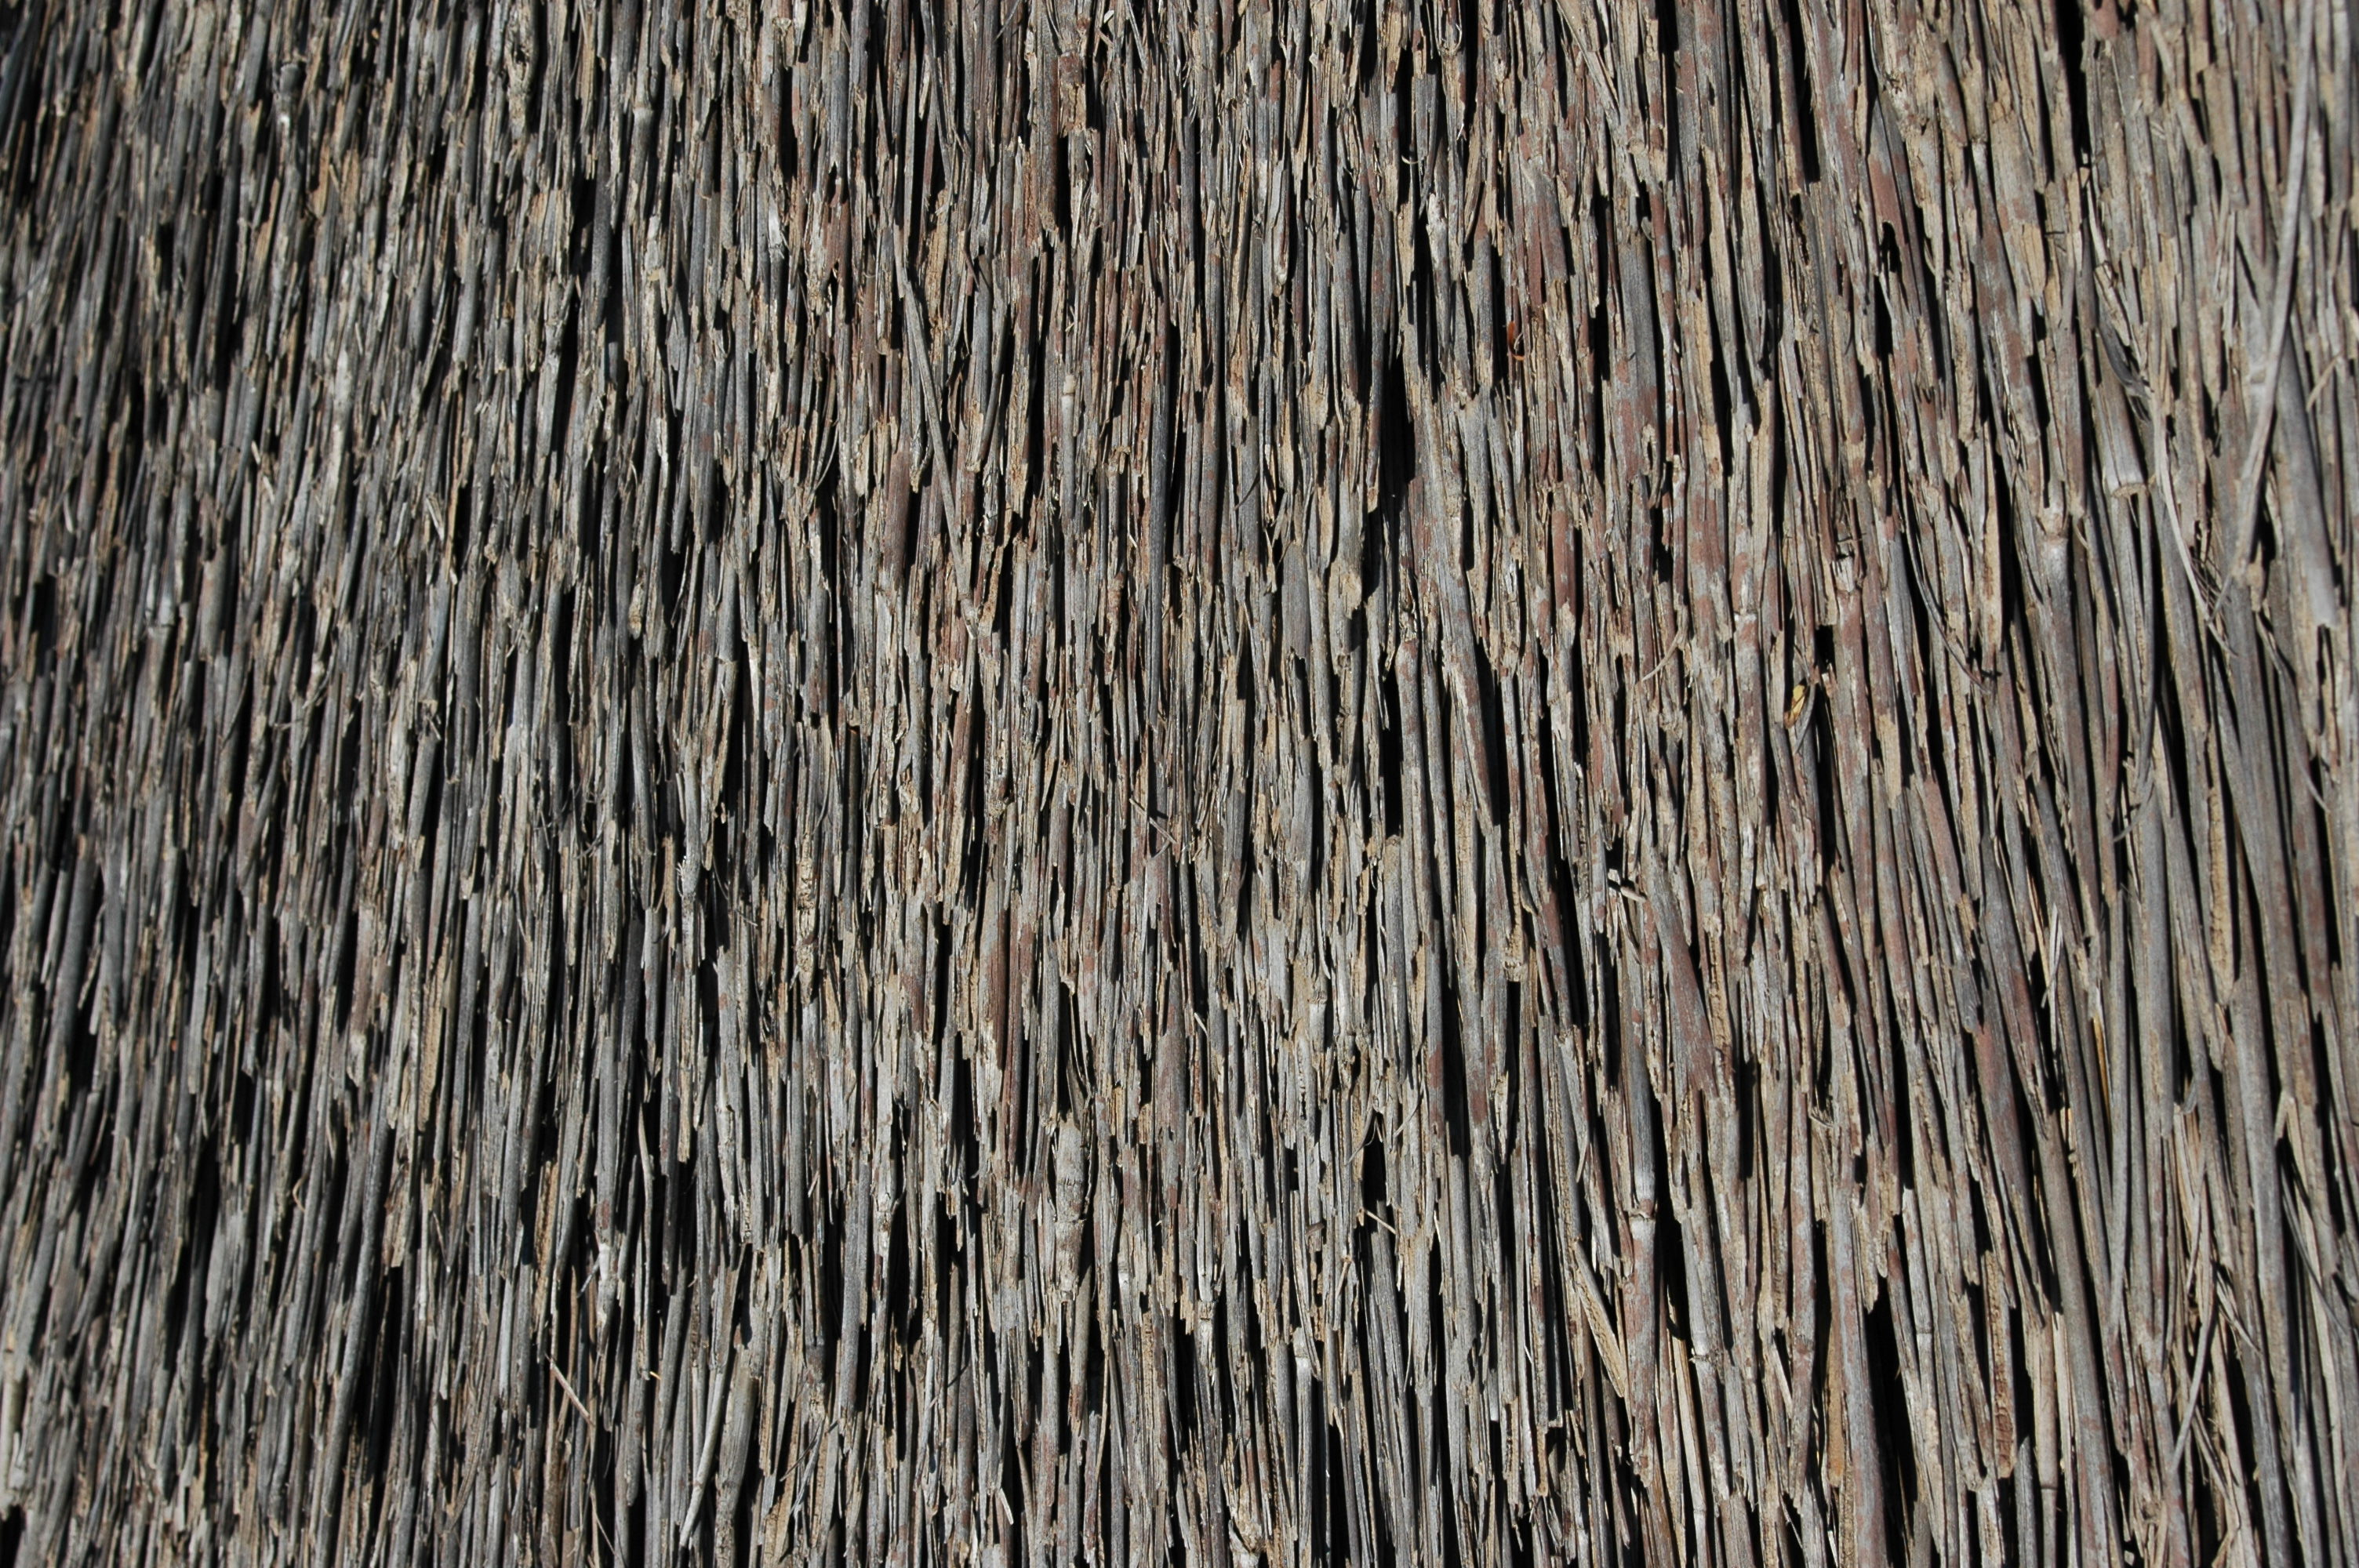 Grass Thatched Roofs (Thatching) Suppliers In Cape Town